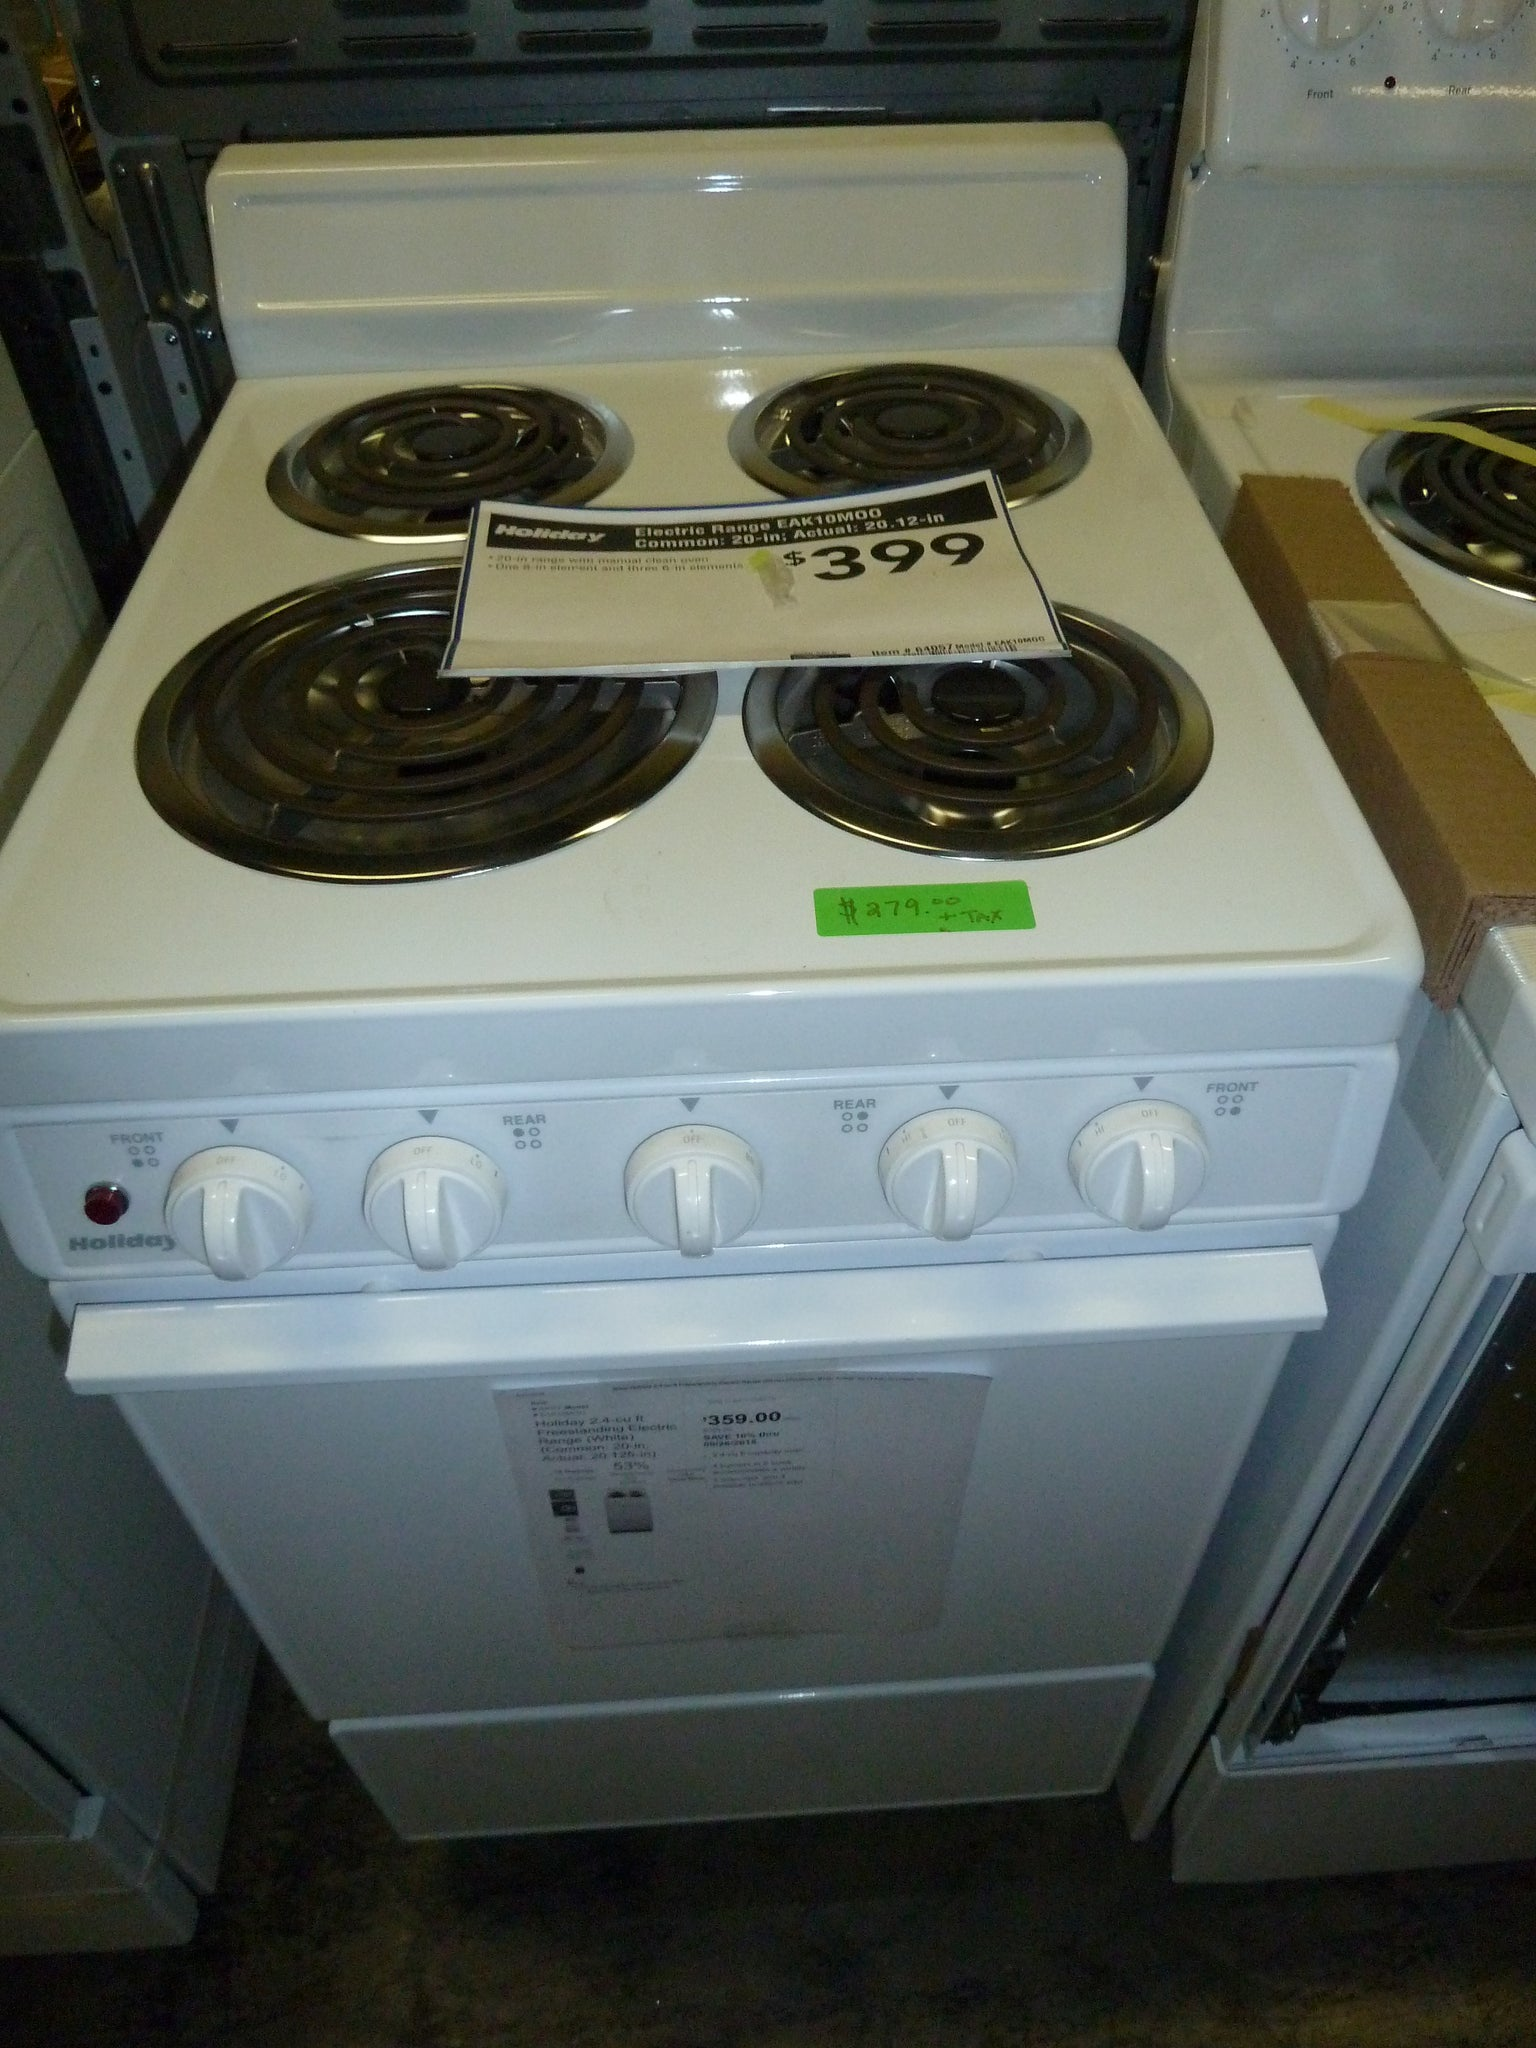 Holiday 2.4-cu ft Freestanding Electric Range (White ...